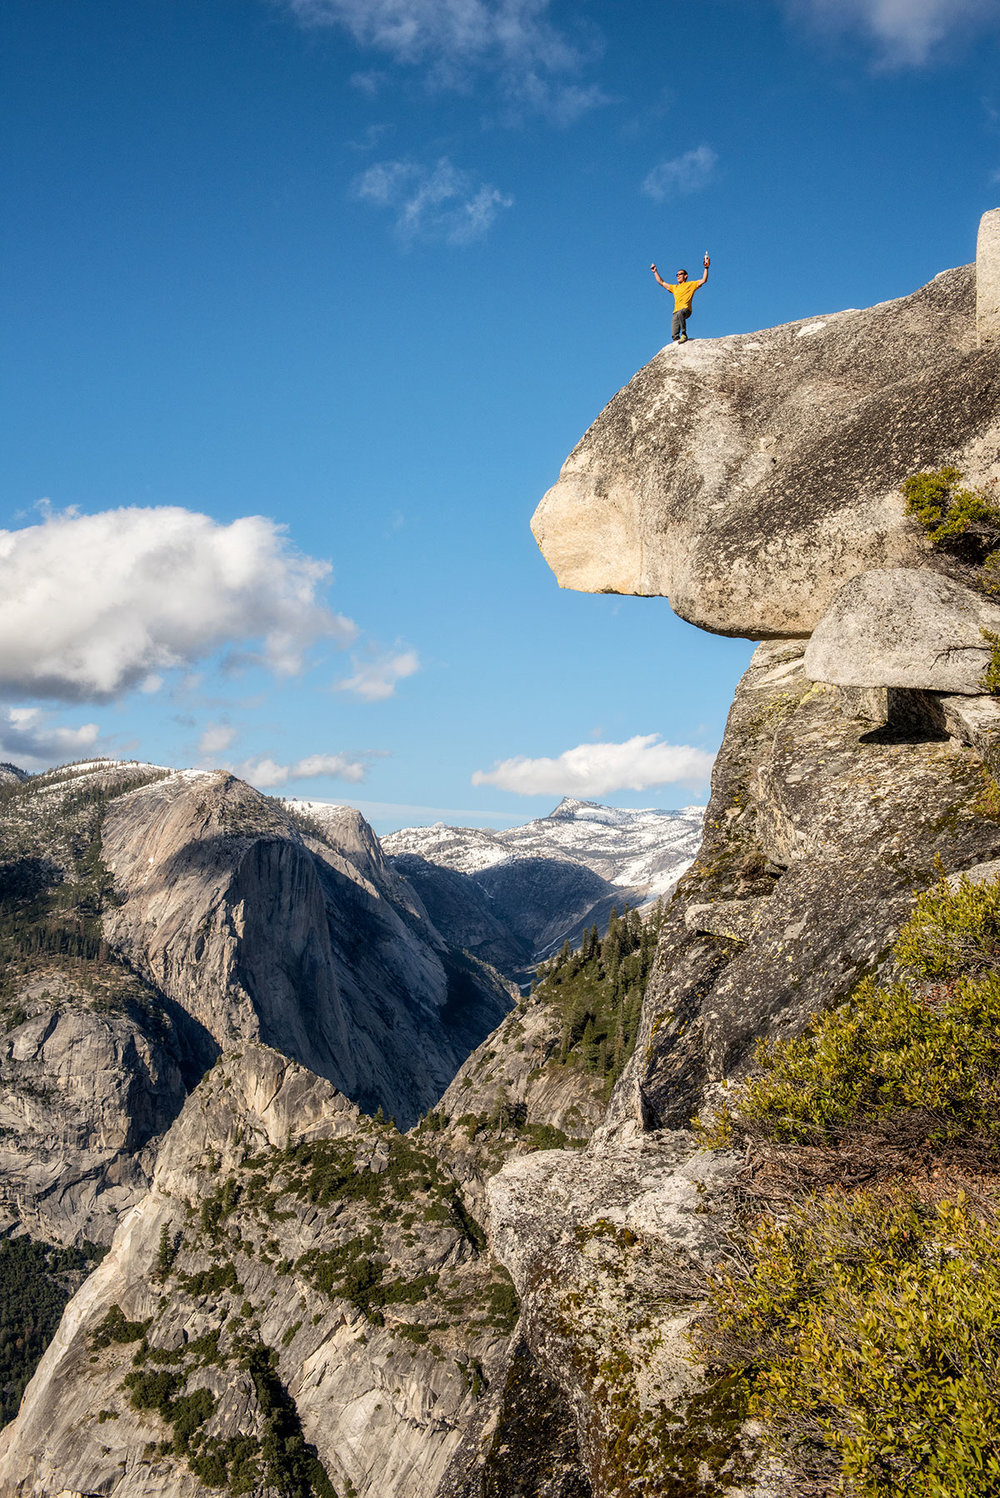 austin-trigg-whiskey-yosemite-product-TINCUP-Porcelain-Wall-Standing-raise-hands-lifestyle.jpg